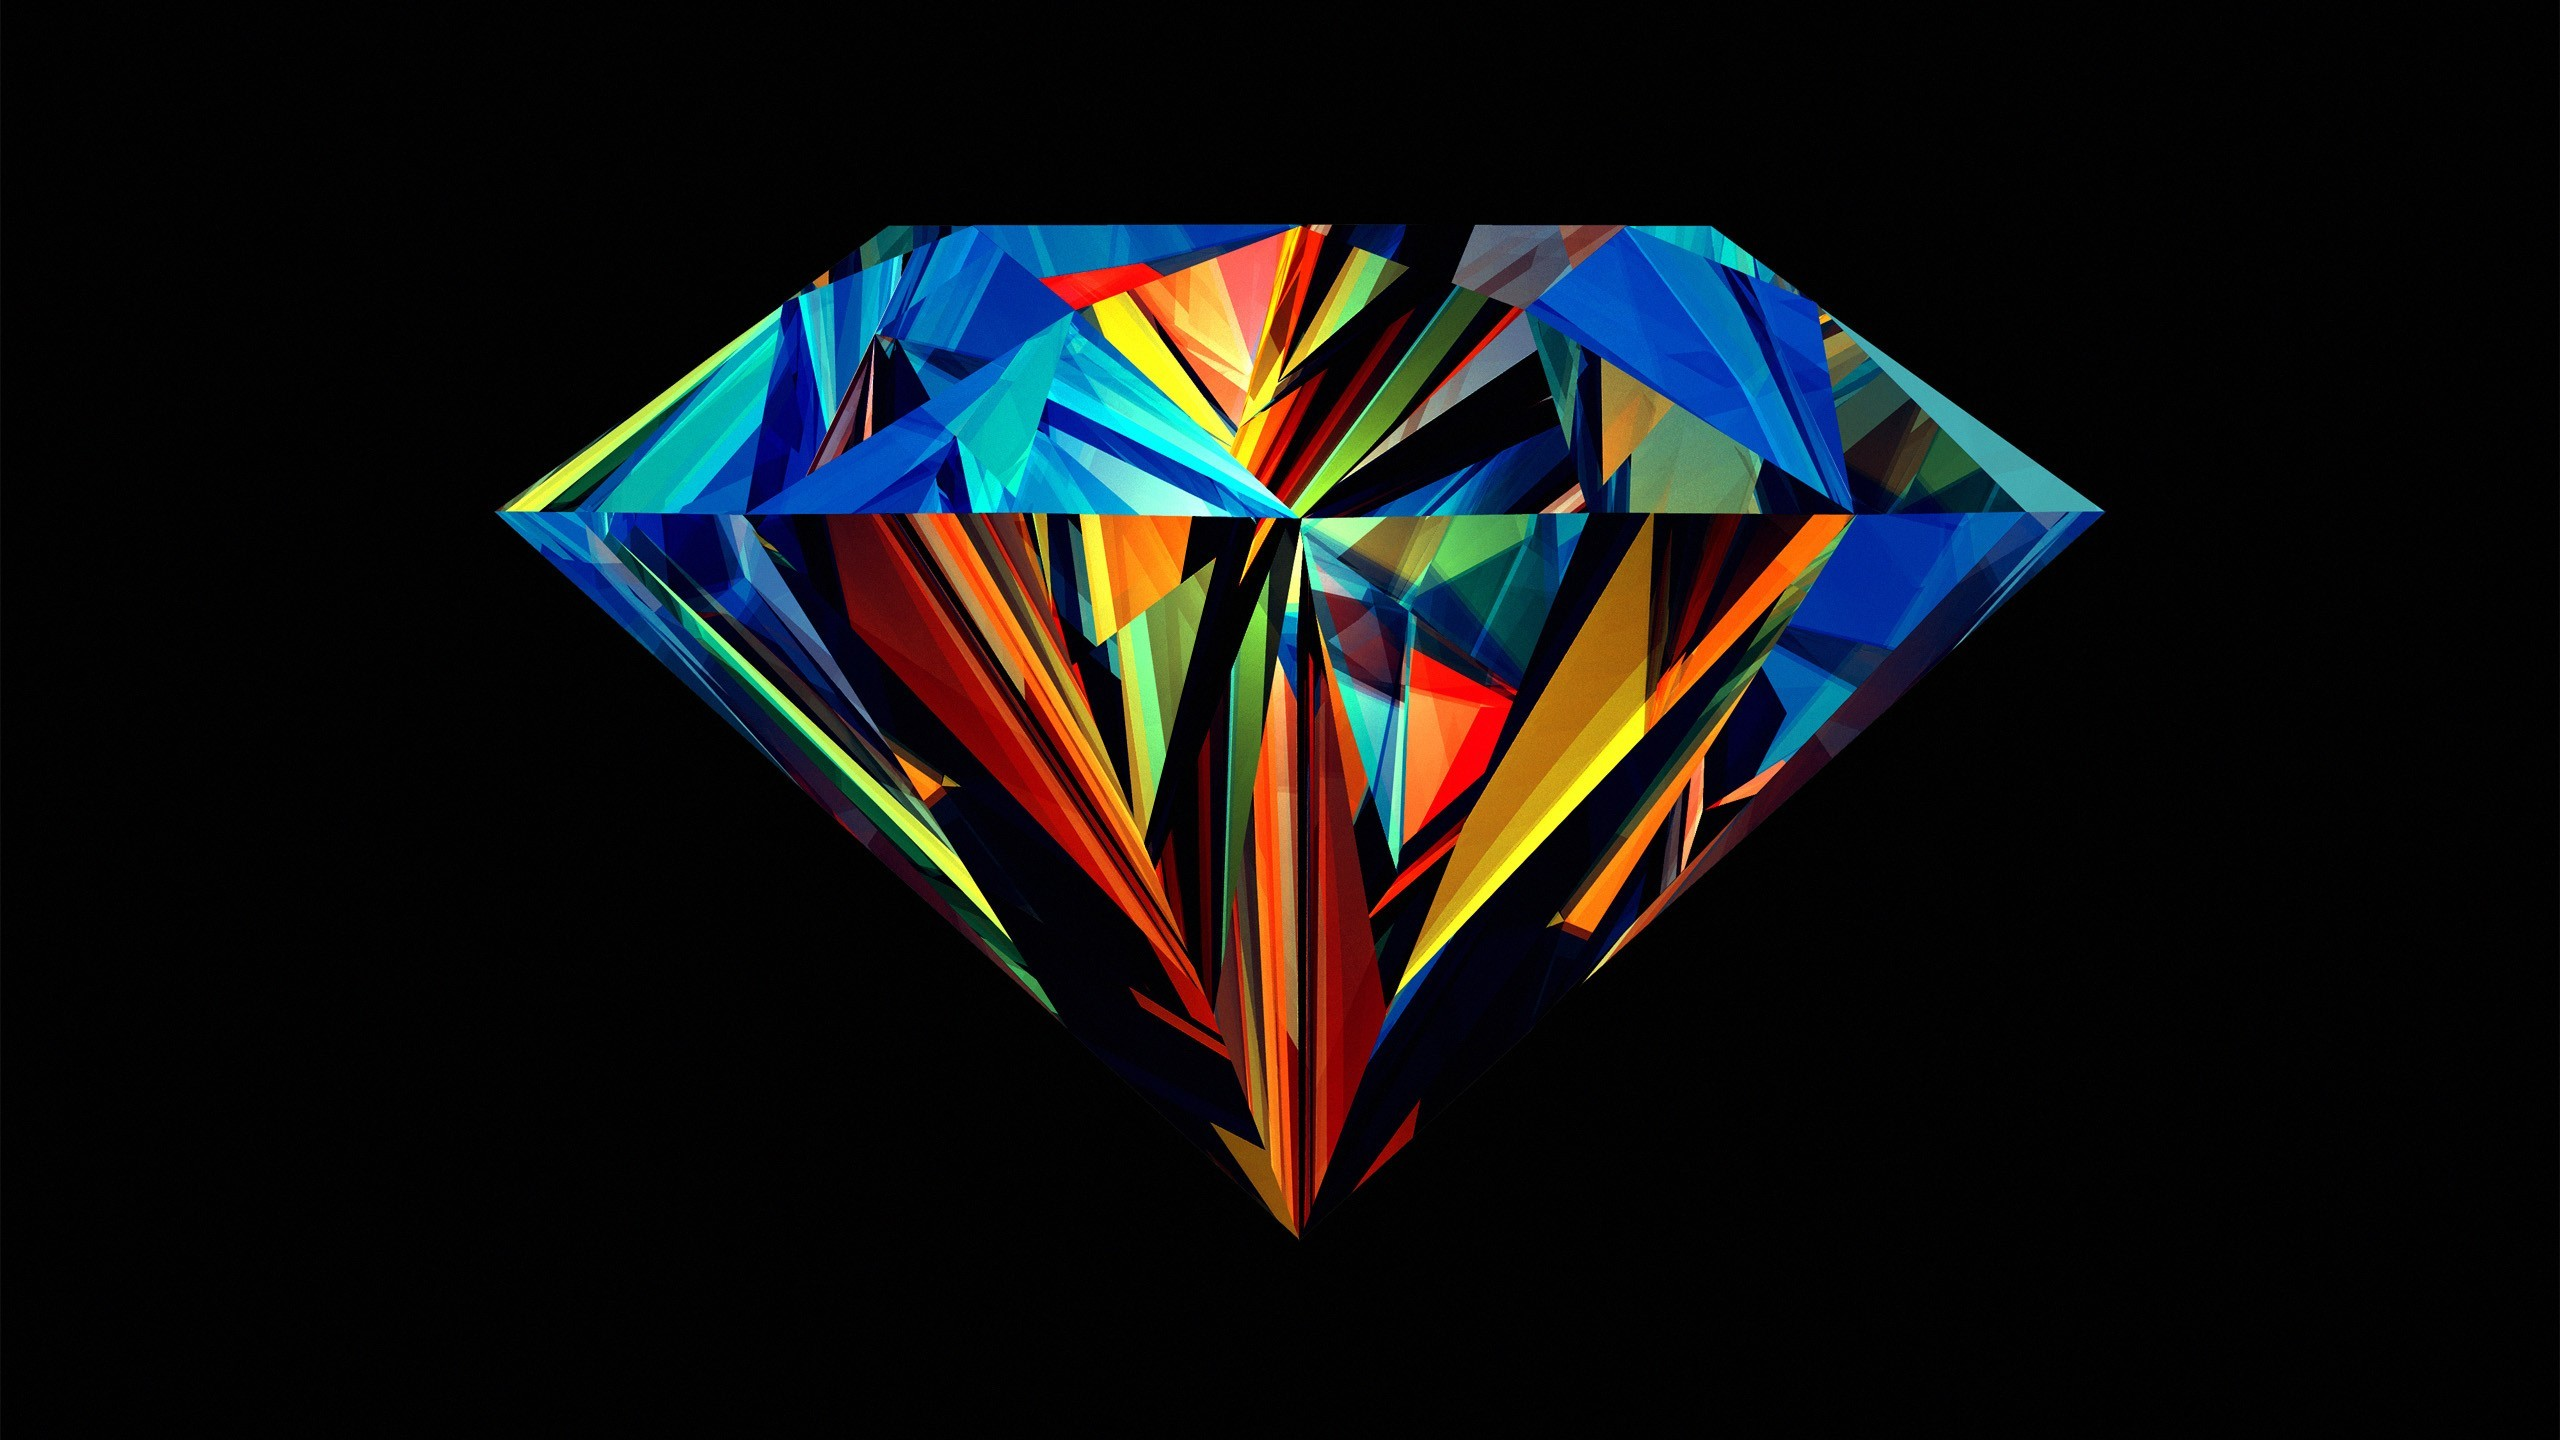 2560x1440 Abstract Black Background Dark Diamond Geometry Justin Maller Multicolor  Shapes ...